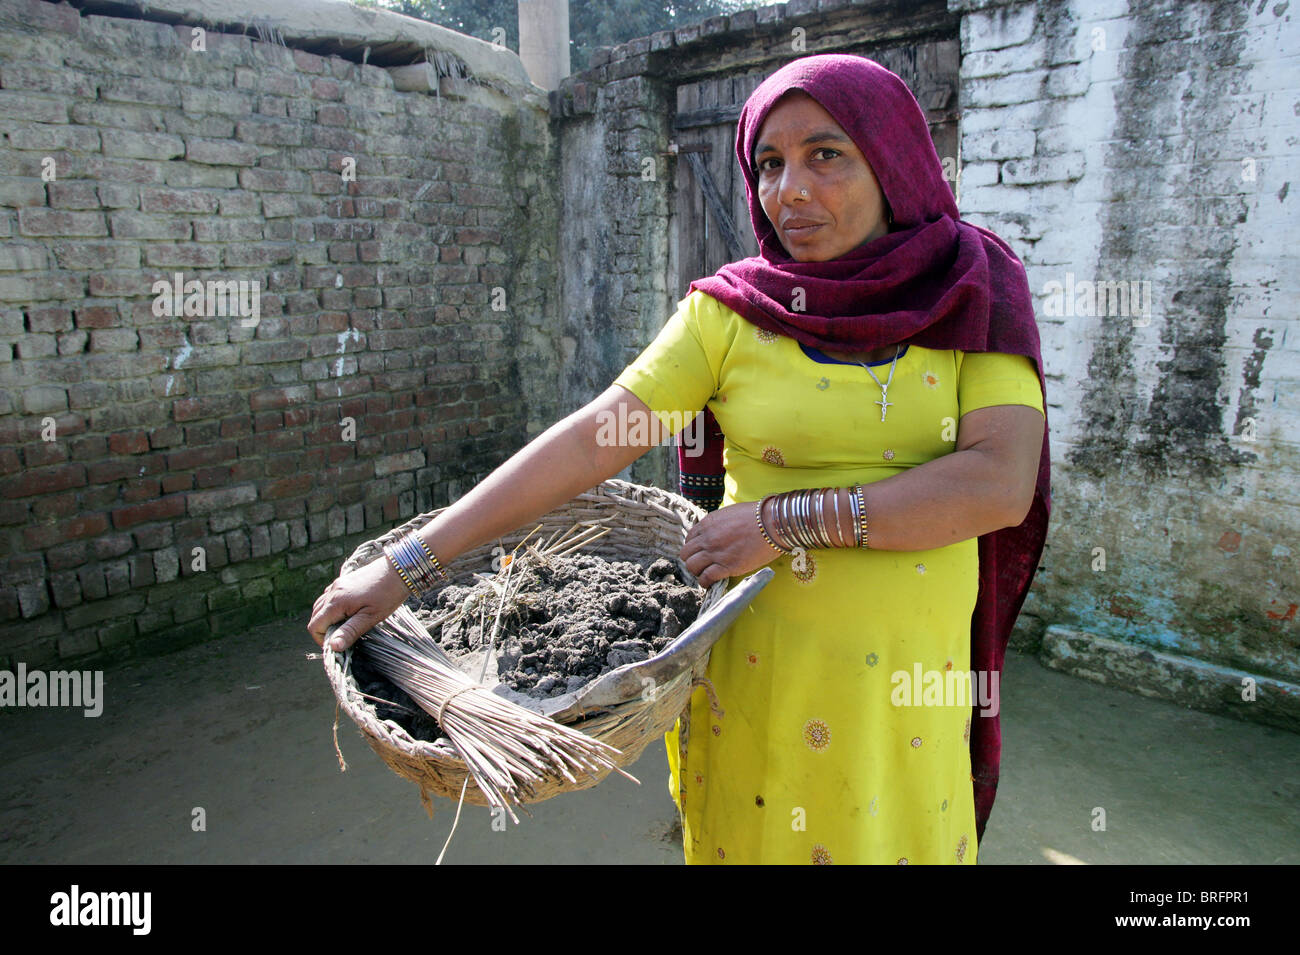 Dalit woman from the cast of the untouchables working as scavangers, cleaning human excrements. Uttar Pradesh, India - Stock Image